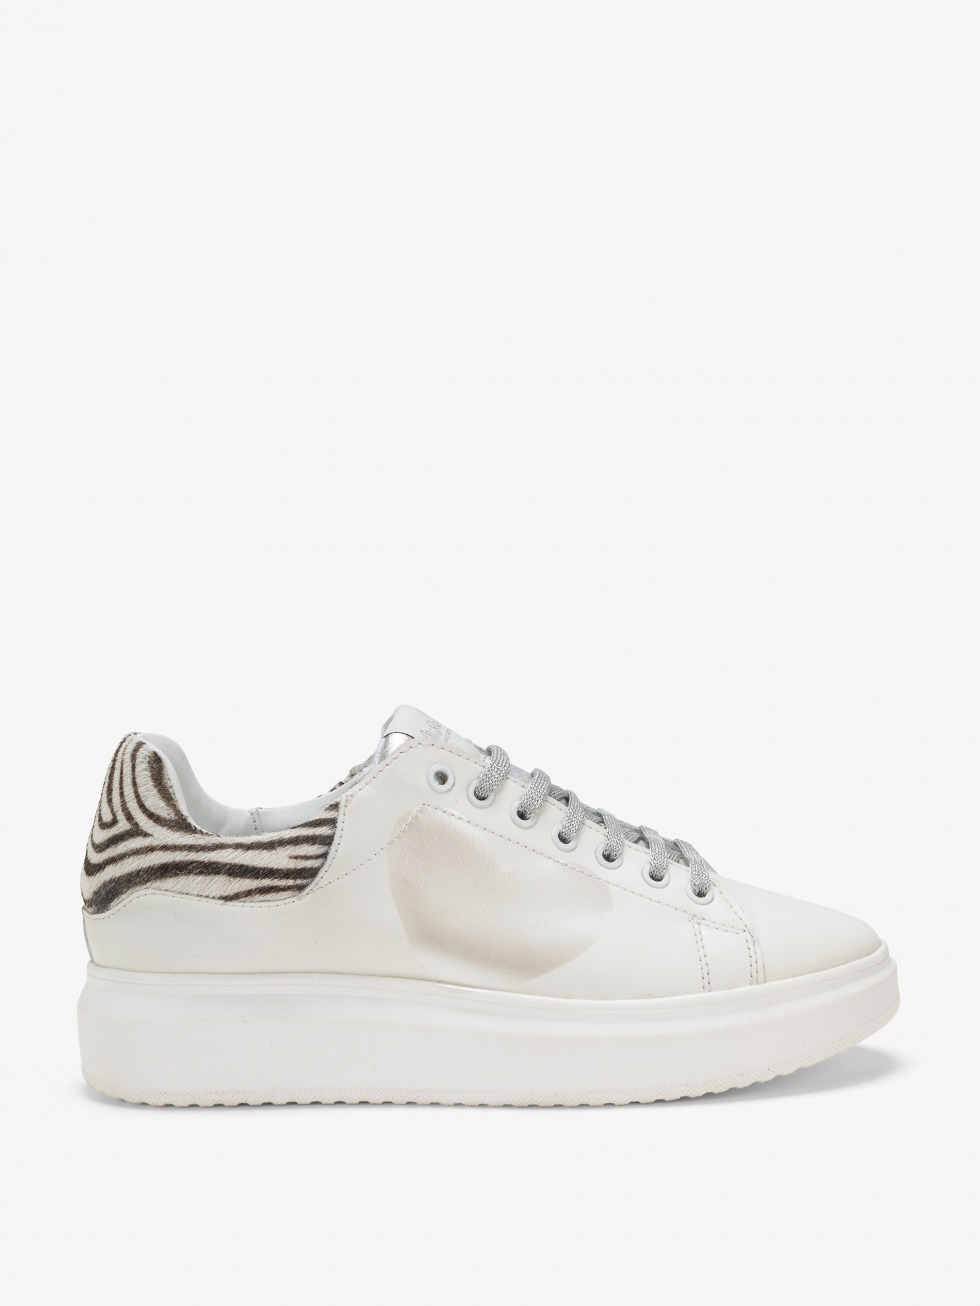 SHOPPING ON LINE NIRA RUBENS SNEAKERS ANGEL MINIZEBRINA SILVER STELLA NEW COLLECTION WOMEN'S FALL WINTER 2020/2021